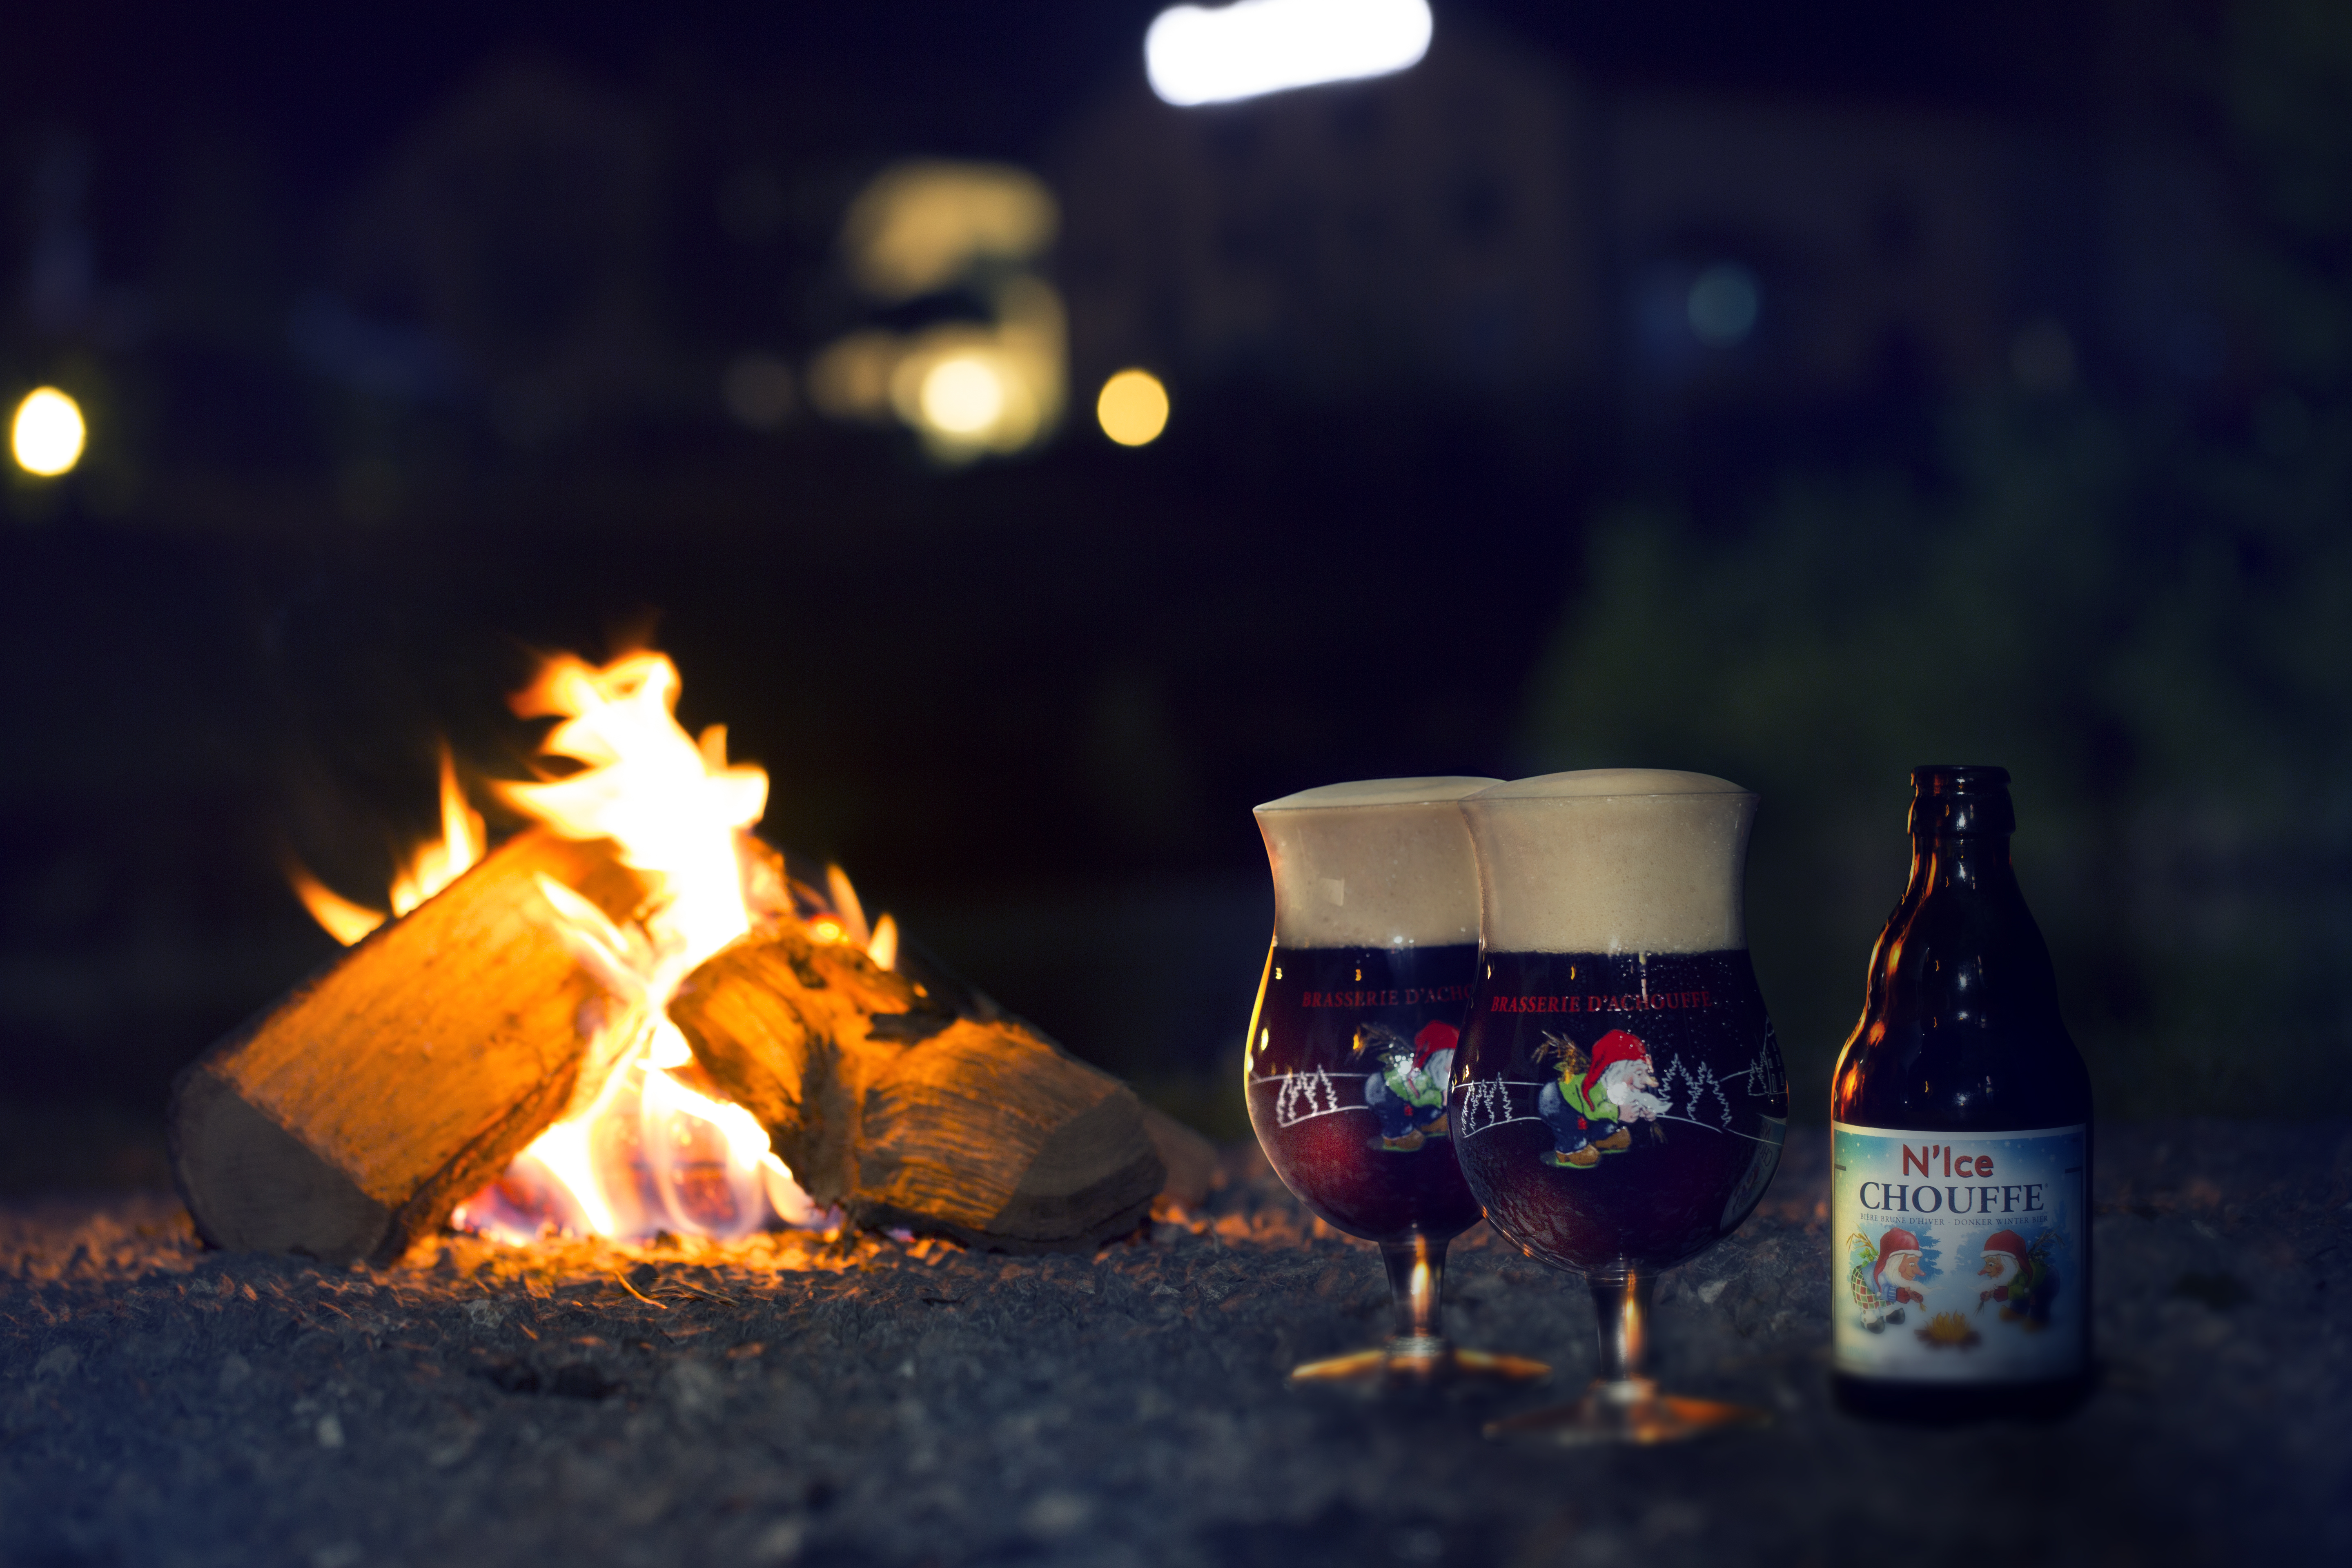 Chouffe N'Ice beer by the Achouffe brewery